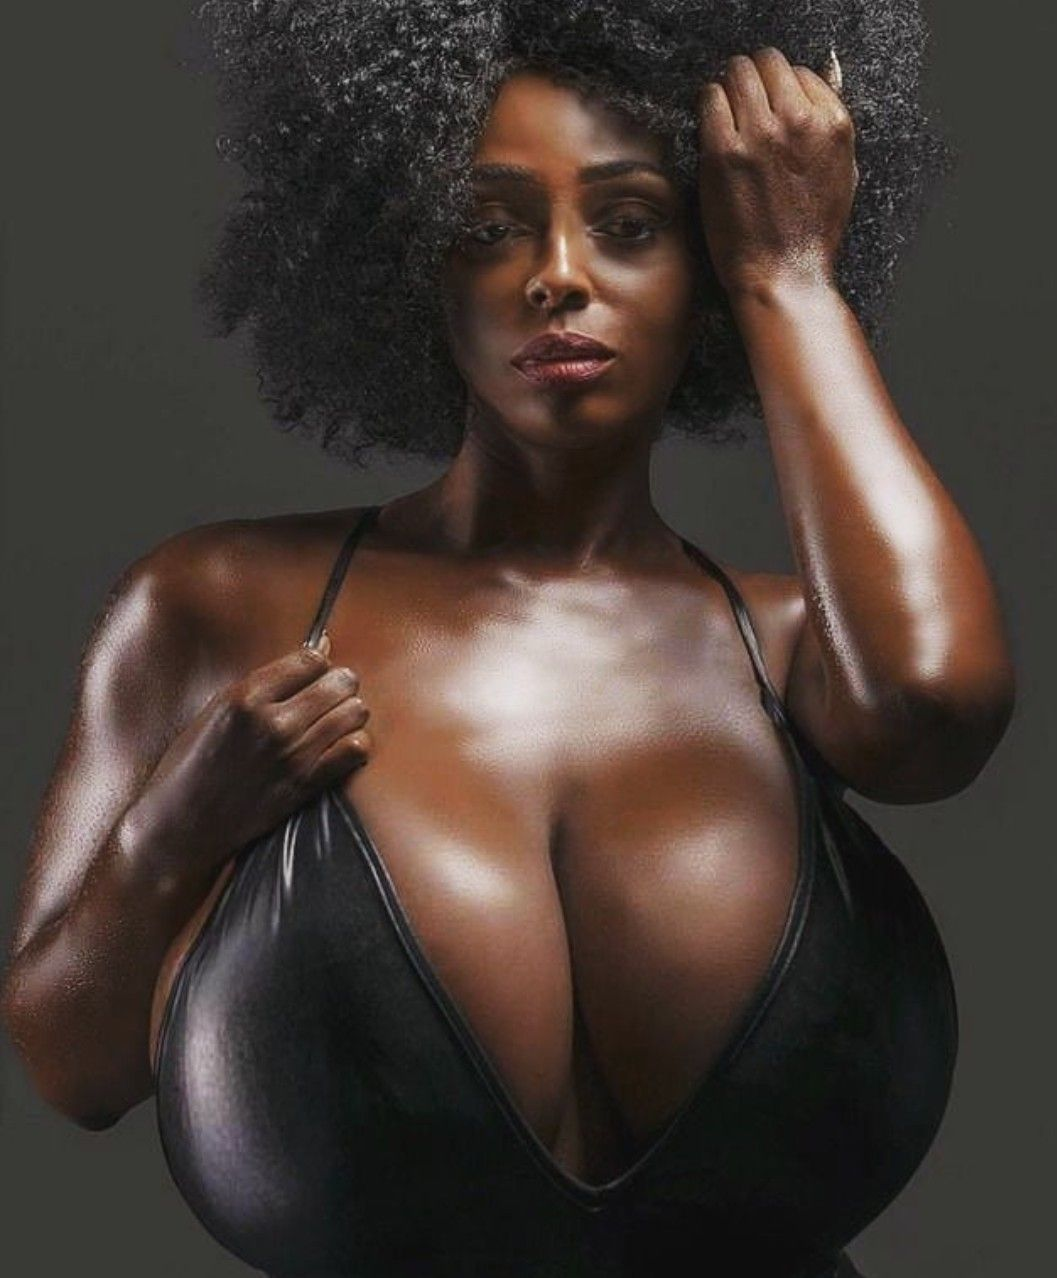 Beautiful black woman with big boobs